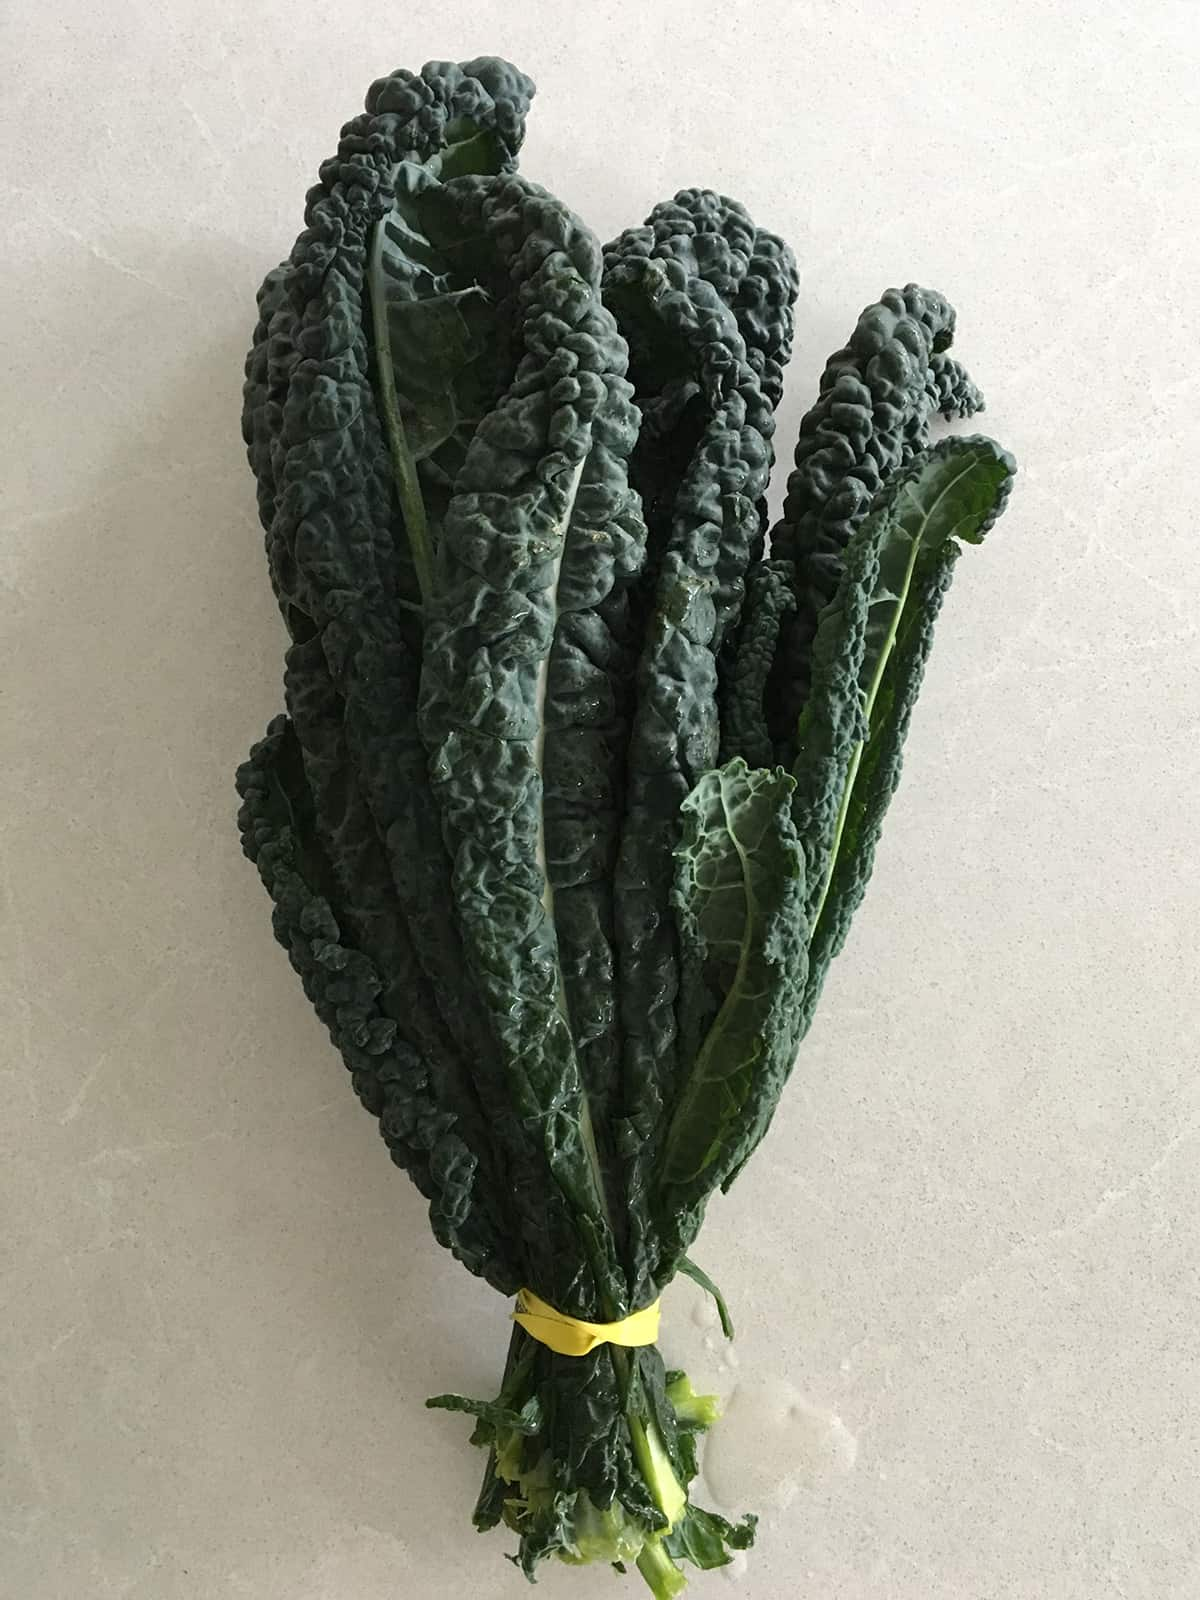 One bunch of lacinato kale on a light grey marble countertop